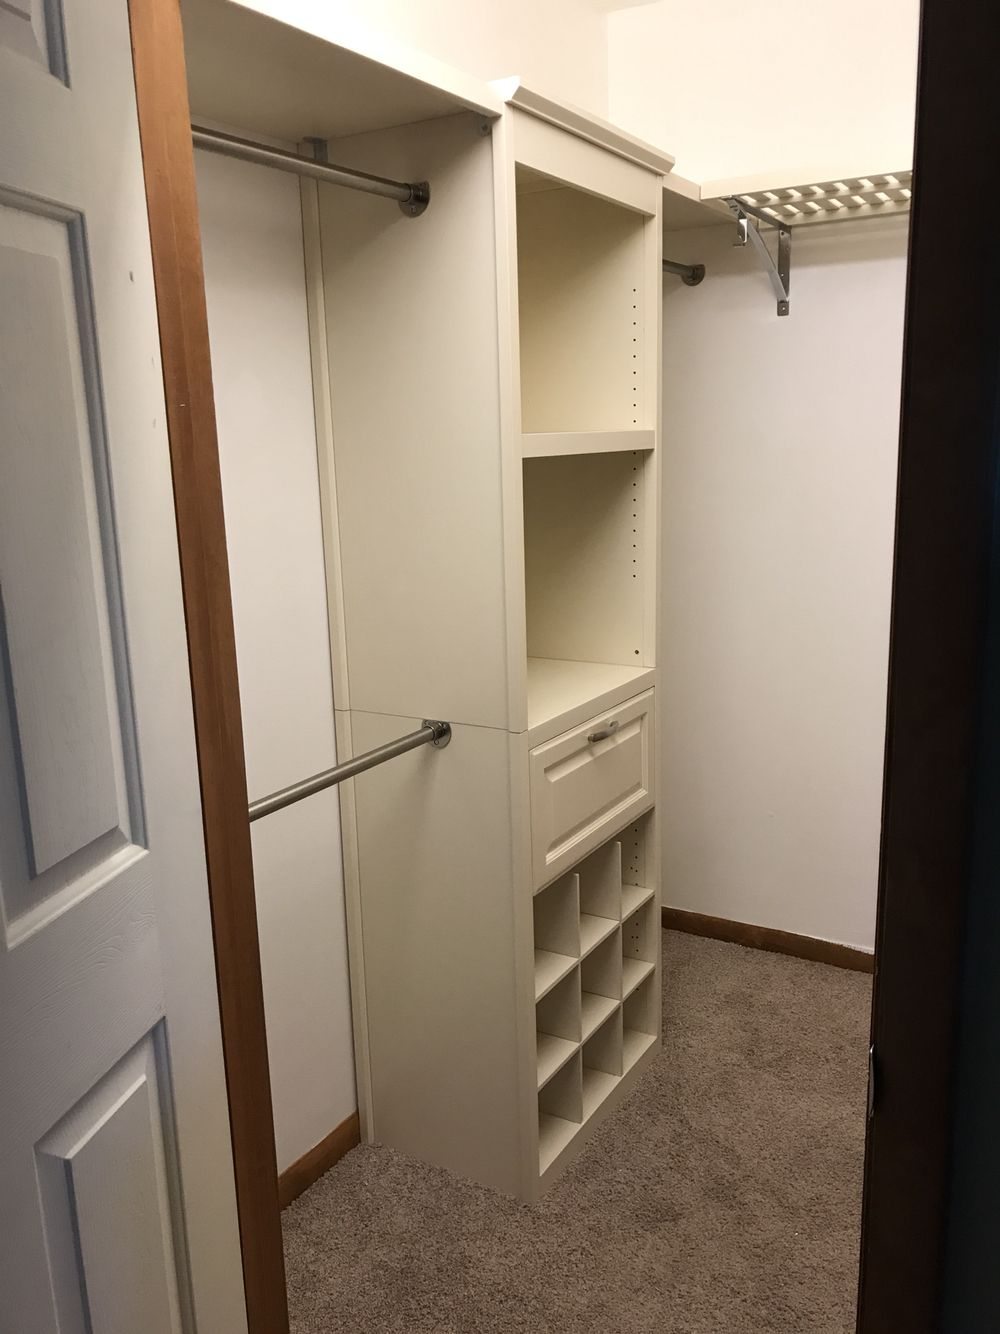 Allen Roth Closet System For Small Walk In Closet Small Closet Design, Walk  In Closet